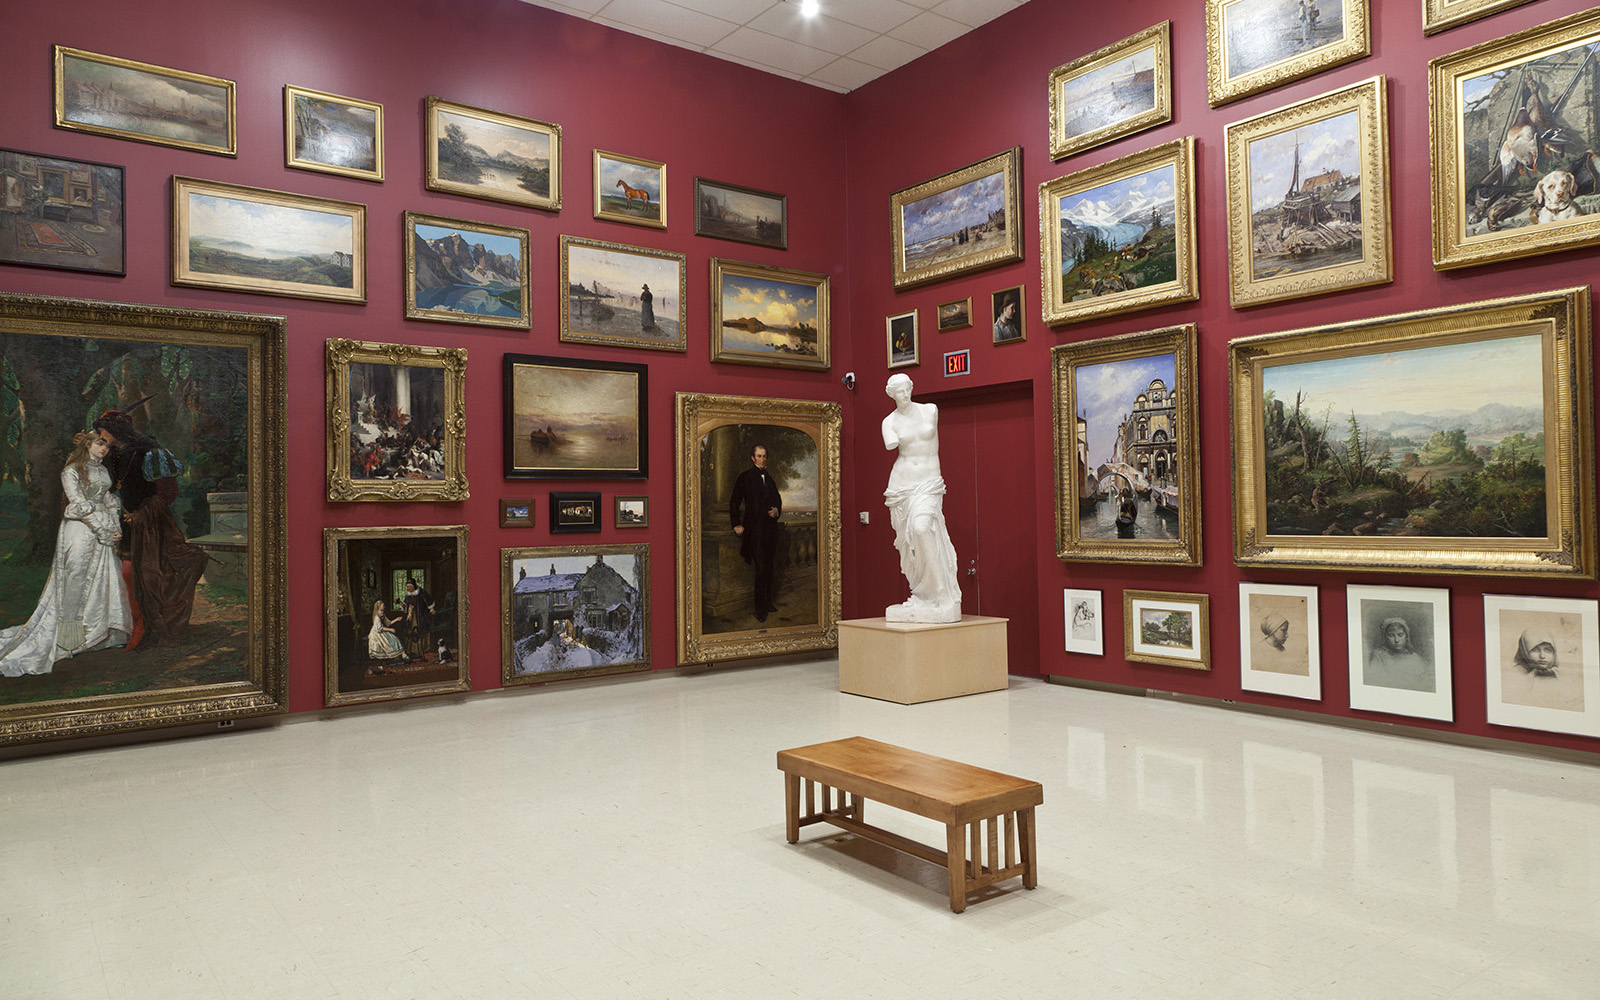 In a gallery with high ceilings, framed paintings and works on paper are hung salon style against deep red walls. A plaster cast of the Venus de Milo is displayed on a wooden plinth in the corner of the room. In the center of the room there is a wooden bench.